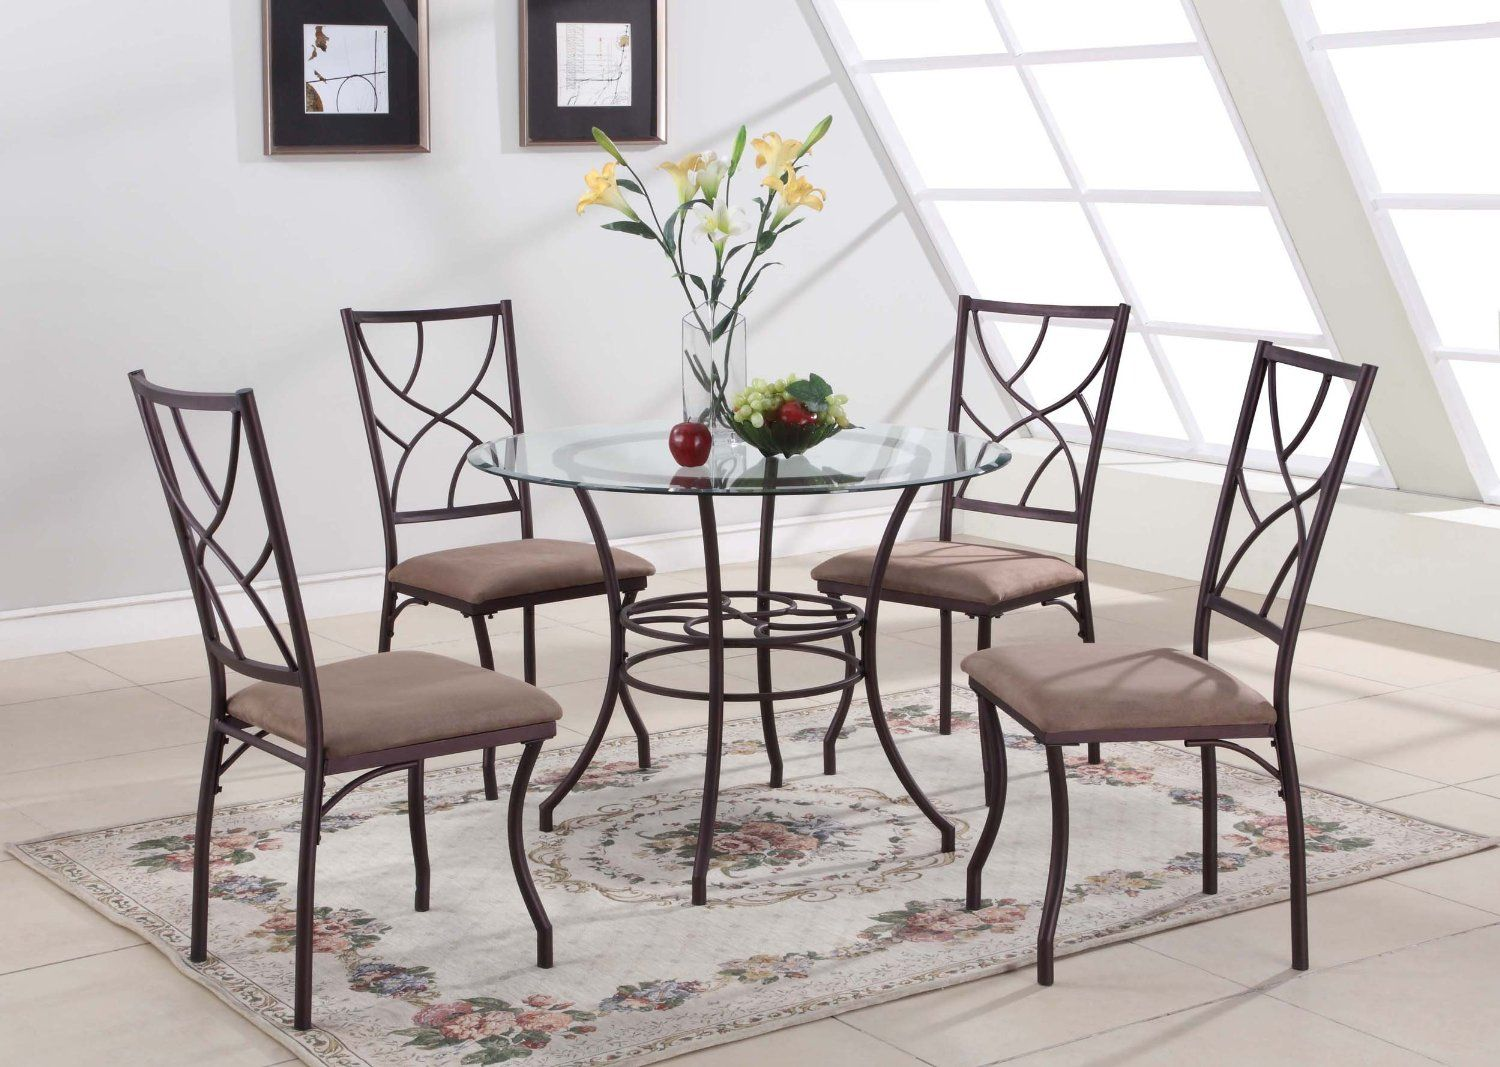 Modern Round Dining Room Kitchen Table And 4 Chairs  Round Cool Dining Room Table And Chairs For 4 Design Ideas